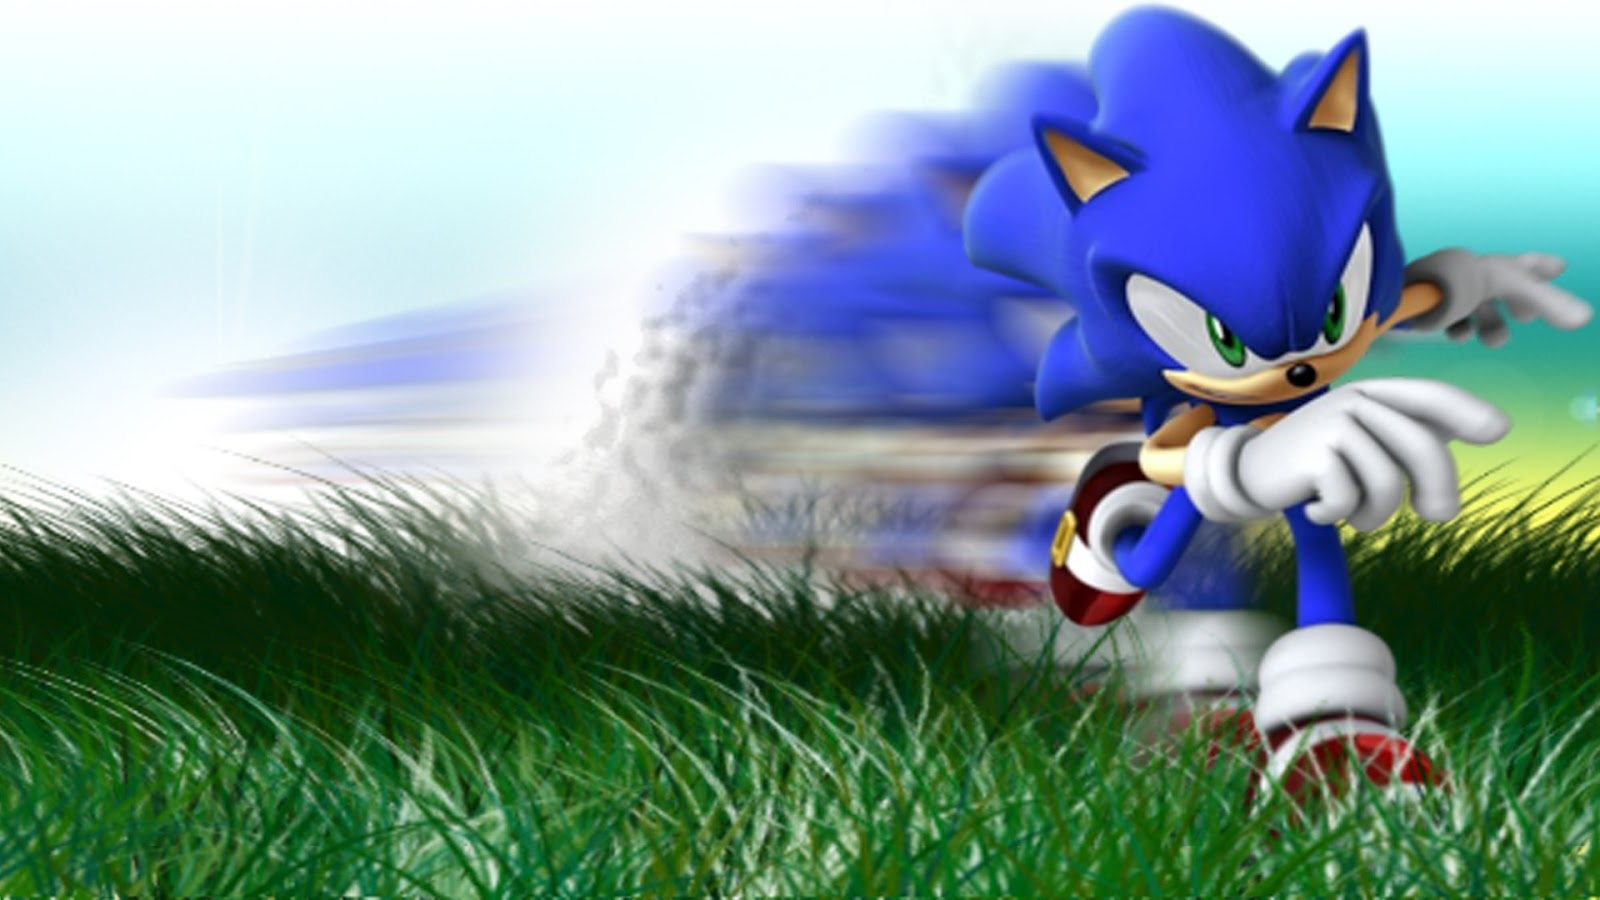 Your Wallpaper: Sonic The Hedgehog Wallpaper